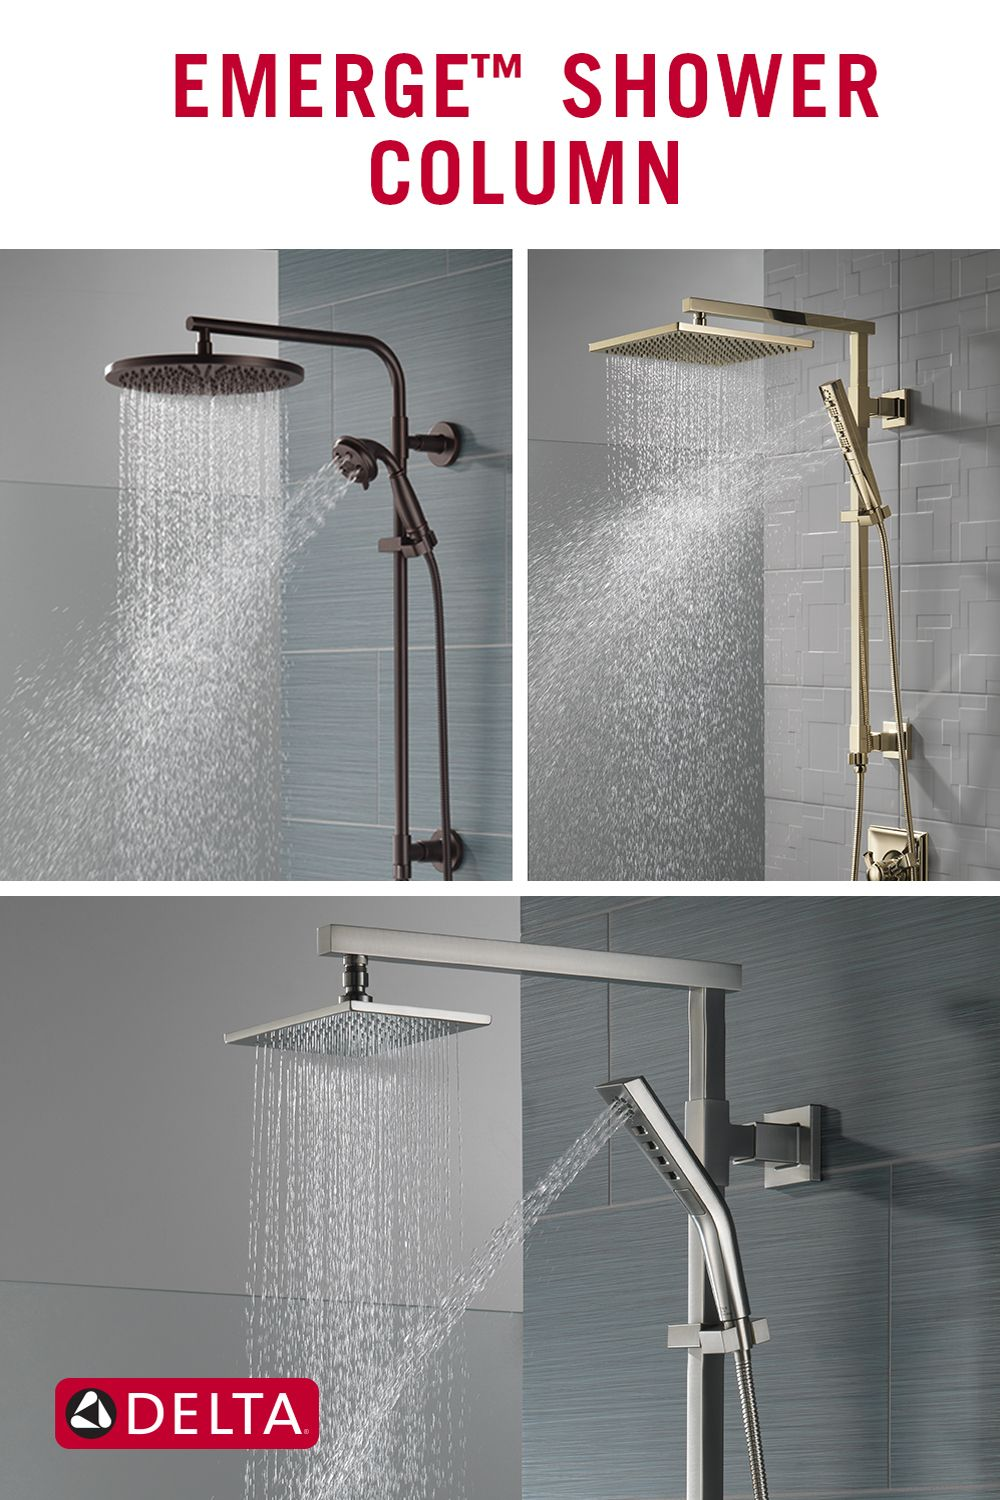 The Emerge Shower Column An Upscale Transformative Shower Option Shower Columns Delta Faucets Bathroom Delta Faucets